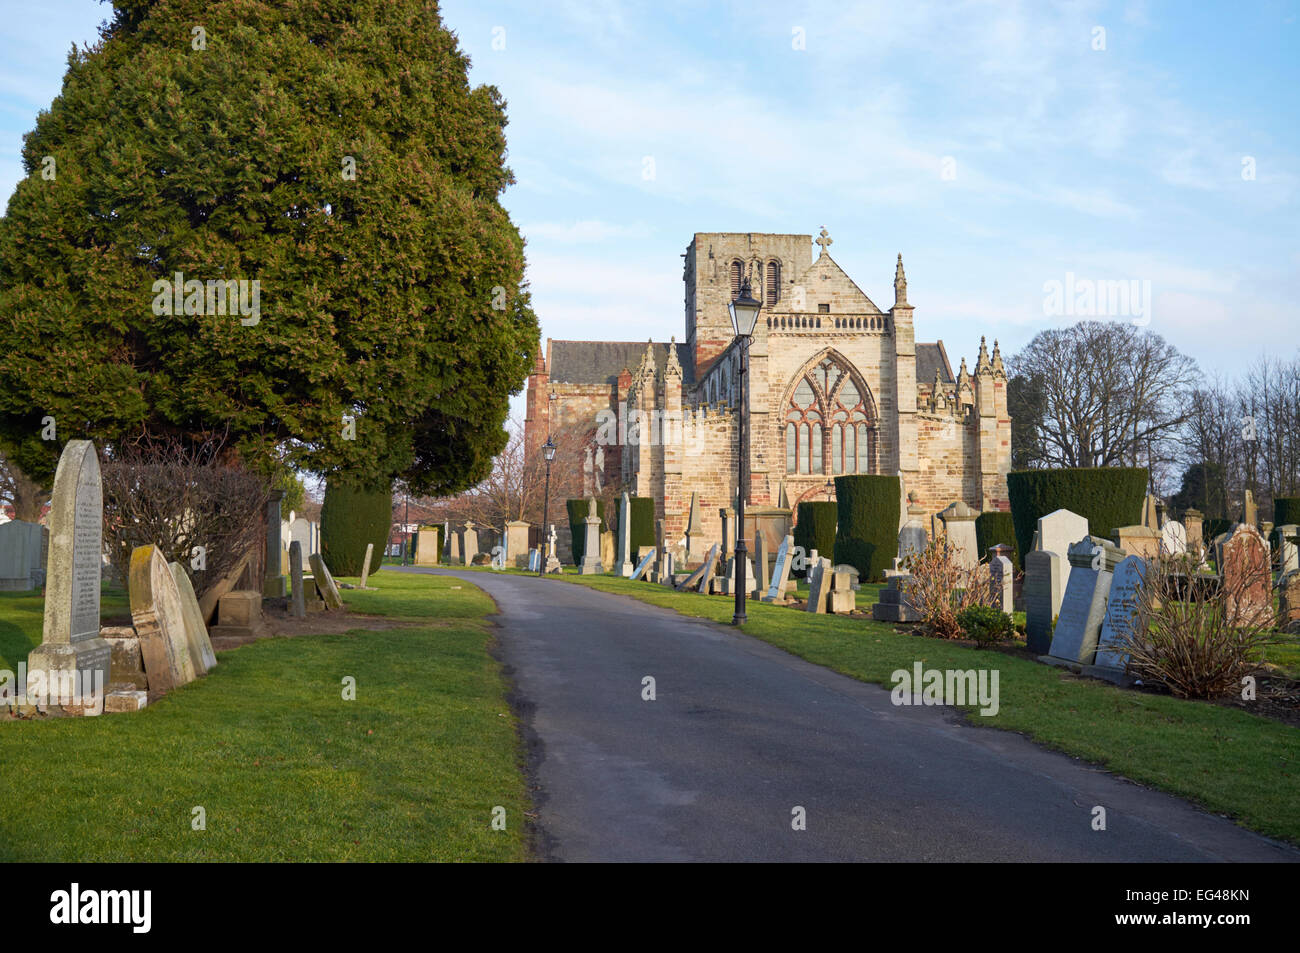 SAINT MARY'S CHURCH, HADDINGTON, SCOTLAND, CHURCH OF SCOTLAND, KIRK - Stock Image